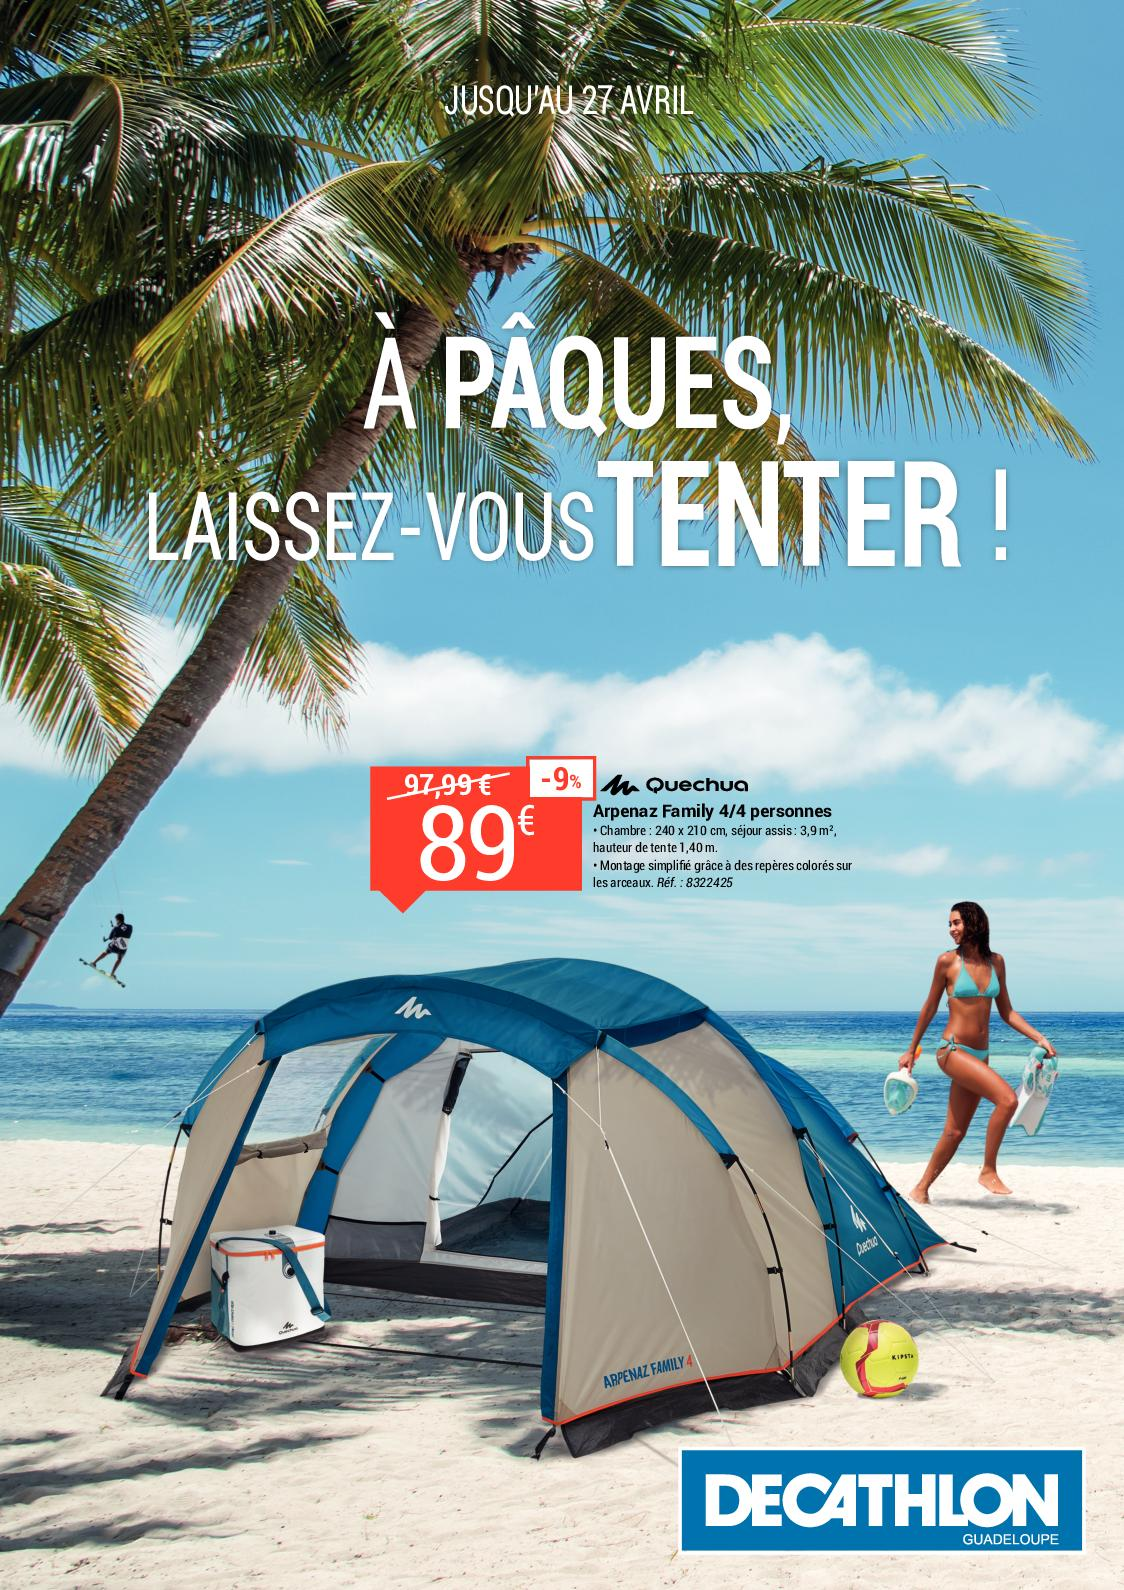 calameo decathlon guadeloupe paques